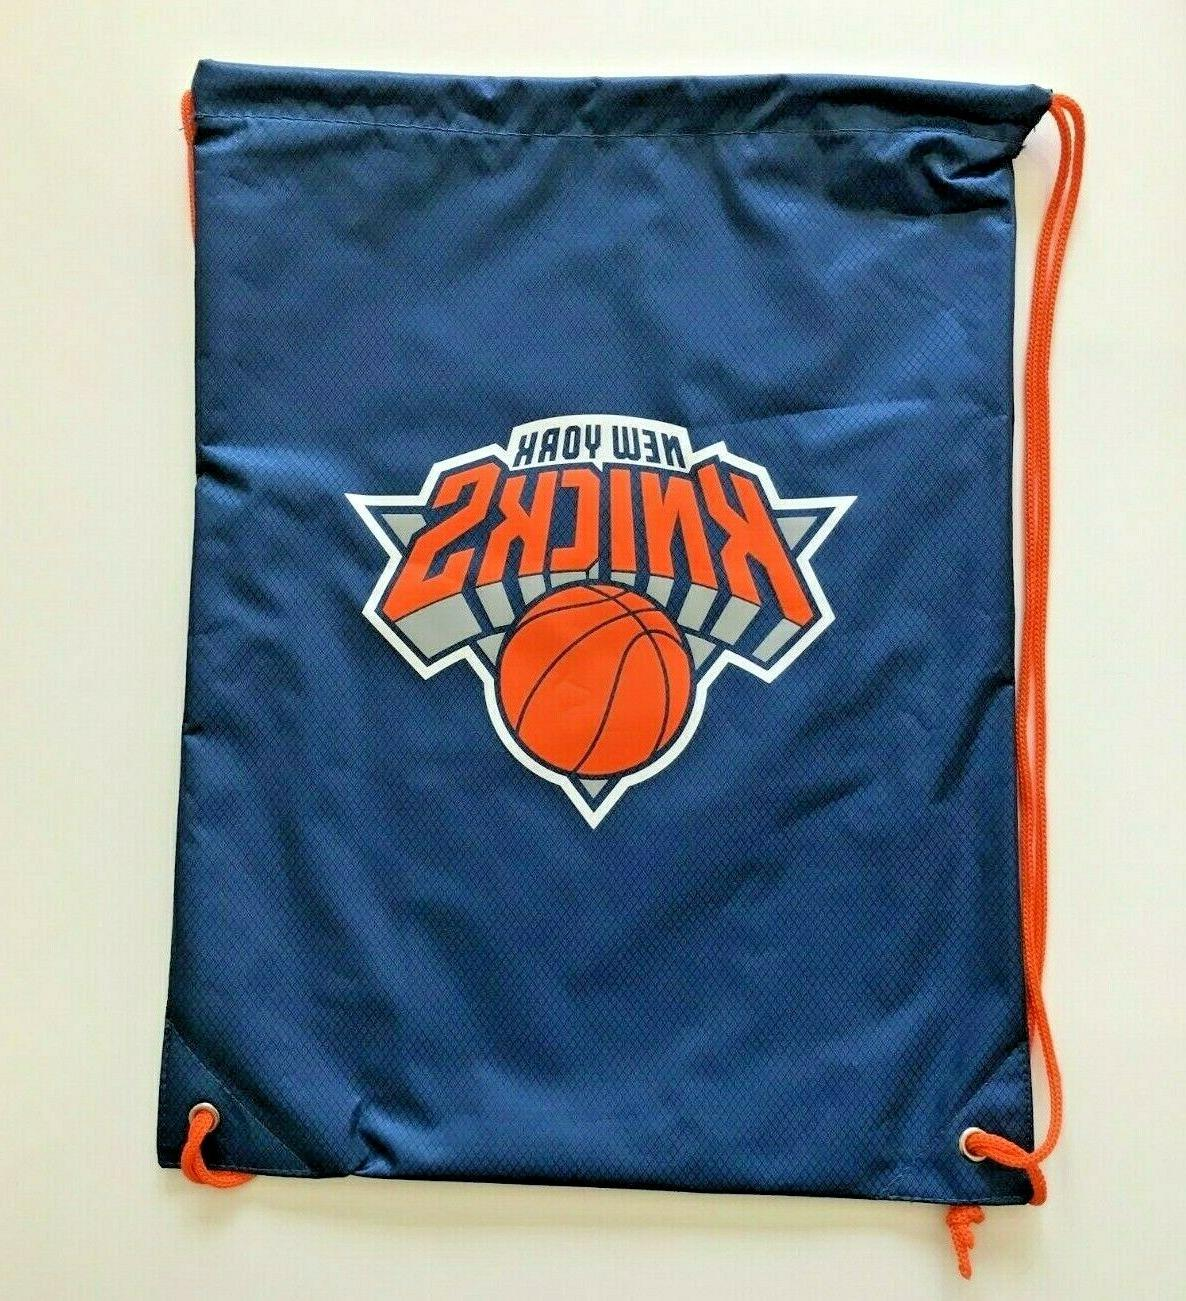 new york knicks drawstring bag logo heavy